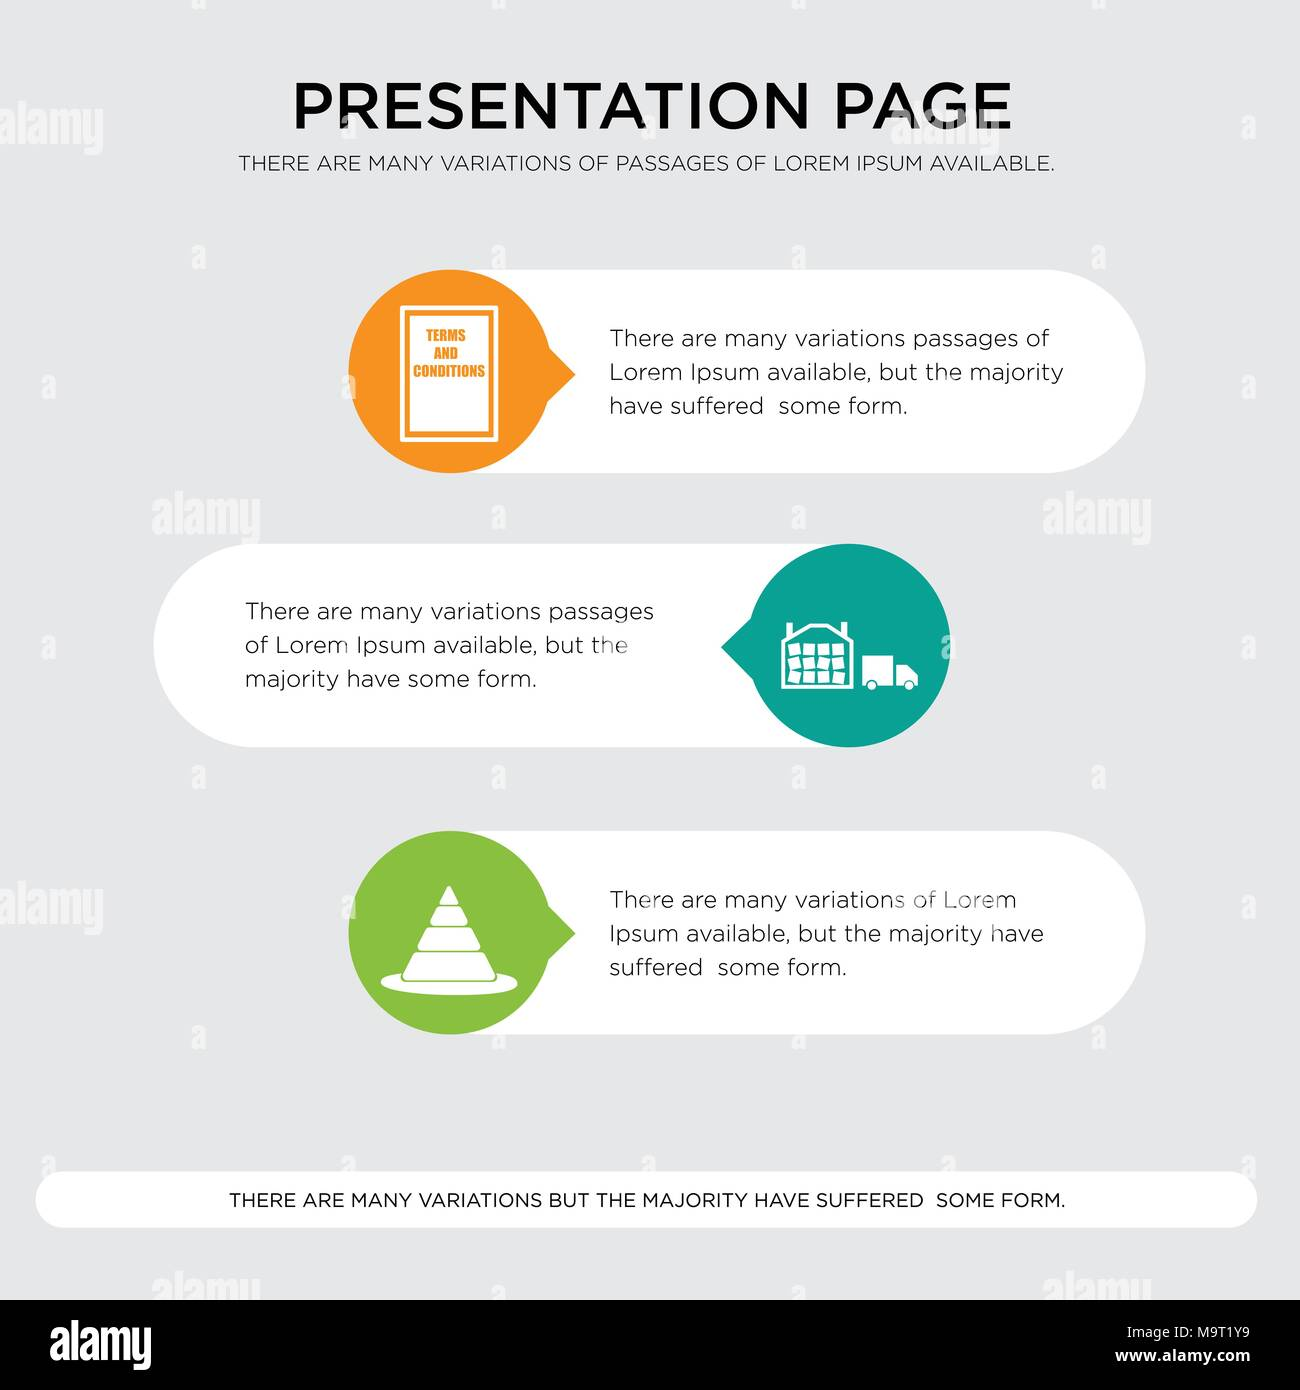 pylon, distribution center, terms and conditions presentation design template in orange, green, yellow colors with horizontal and rounded shapes - Stock Vector